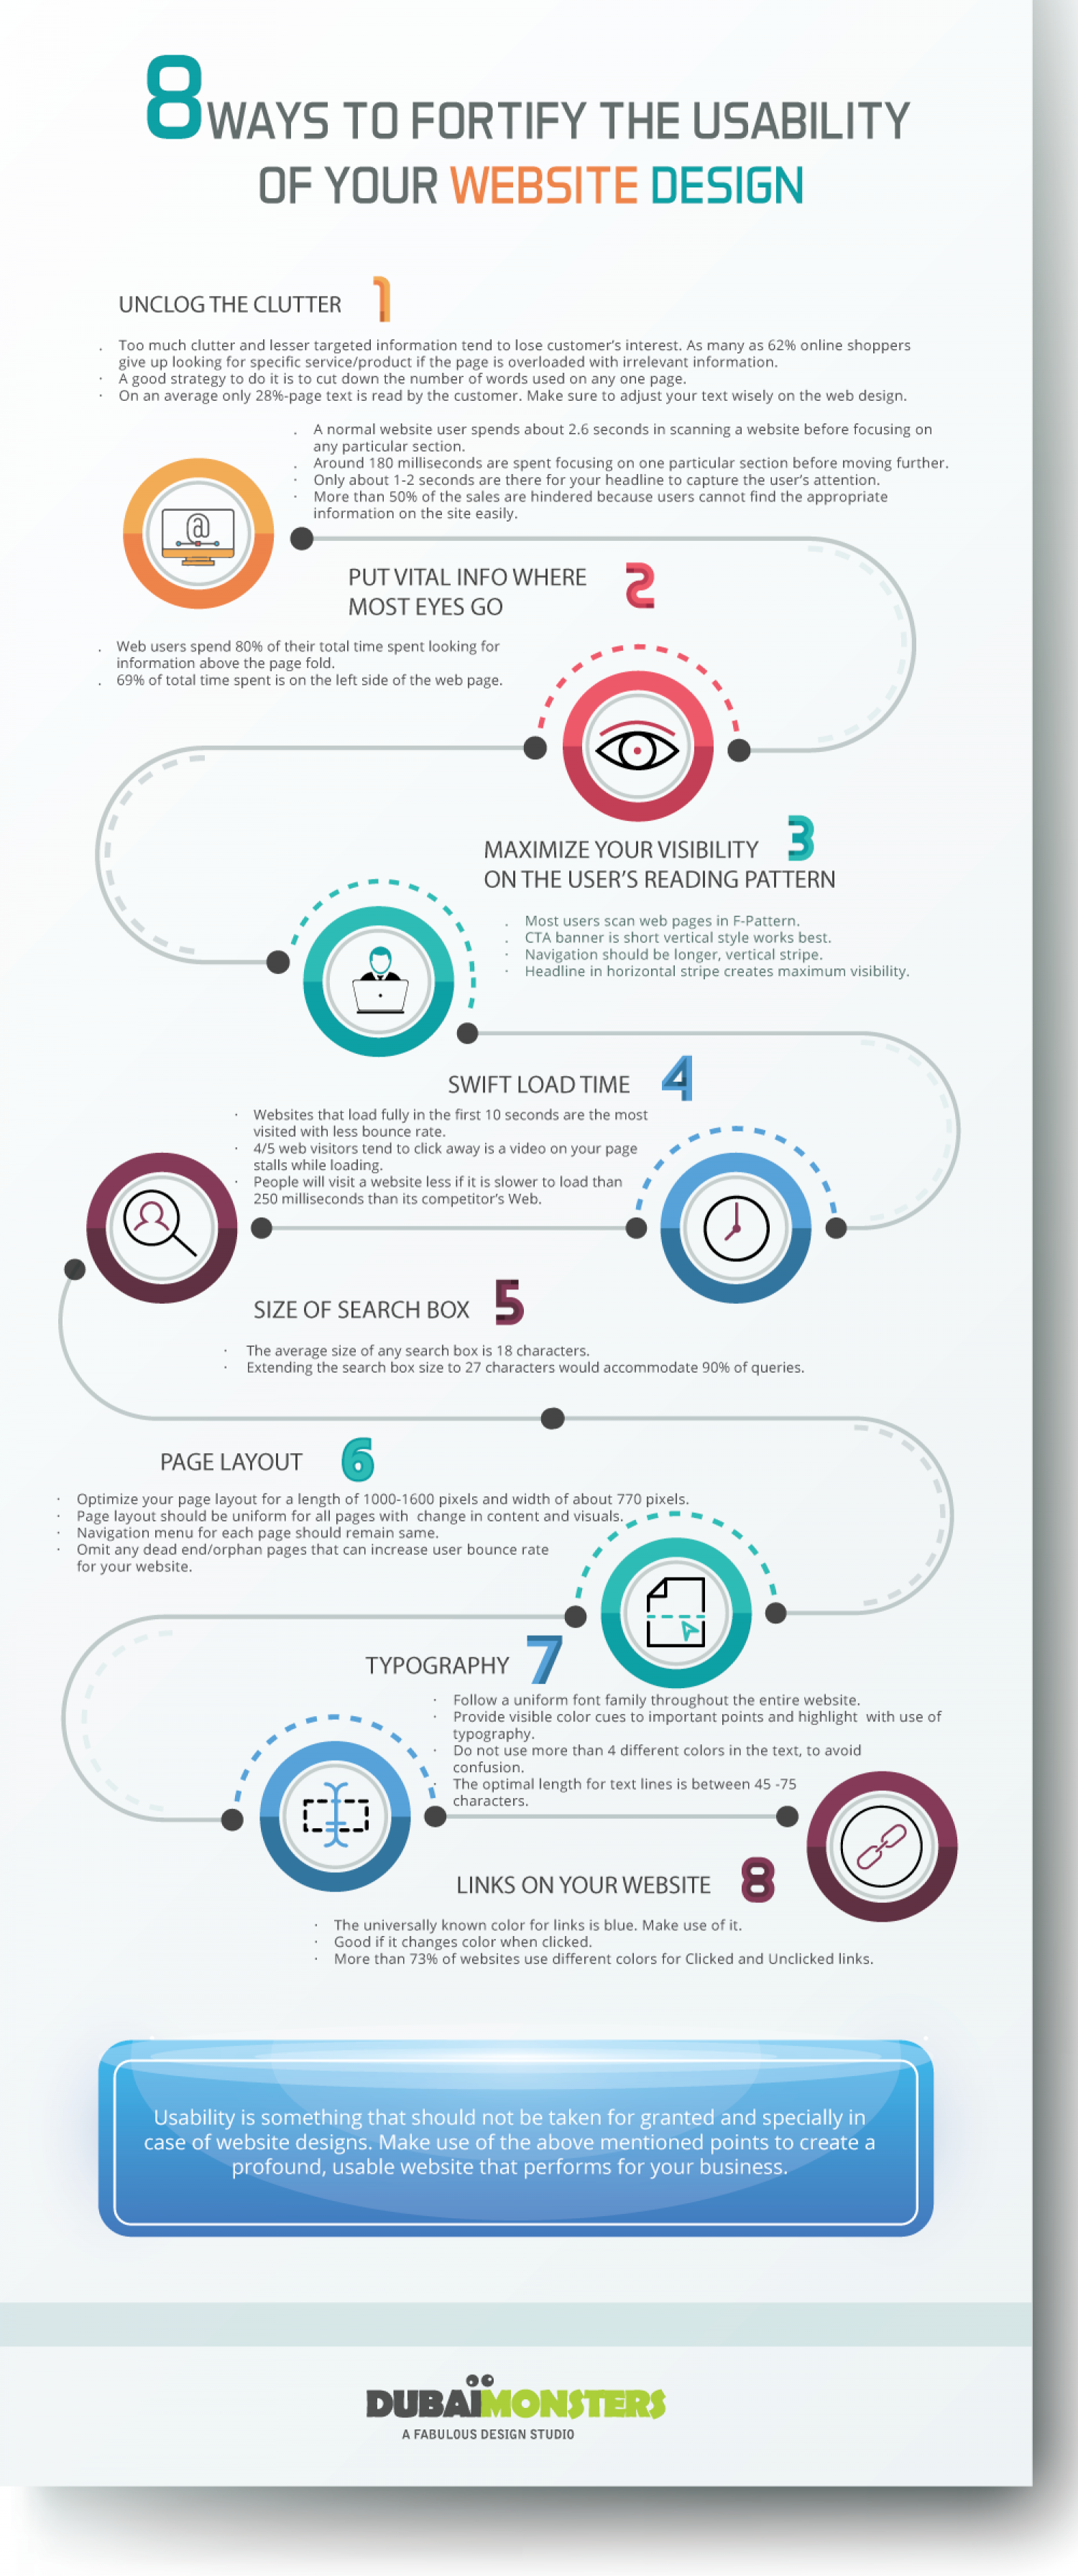 8 Ways to Fortify the Usability of your Website Design Infographic